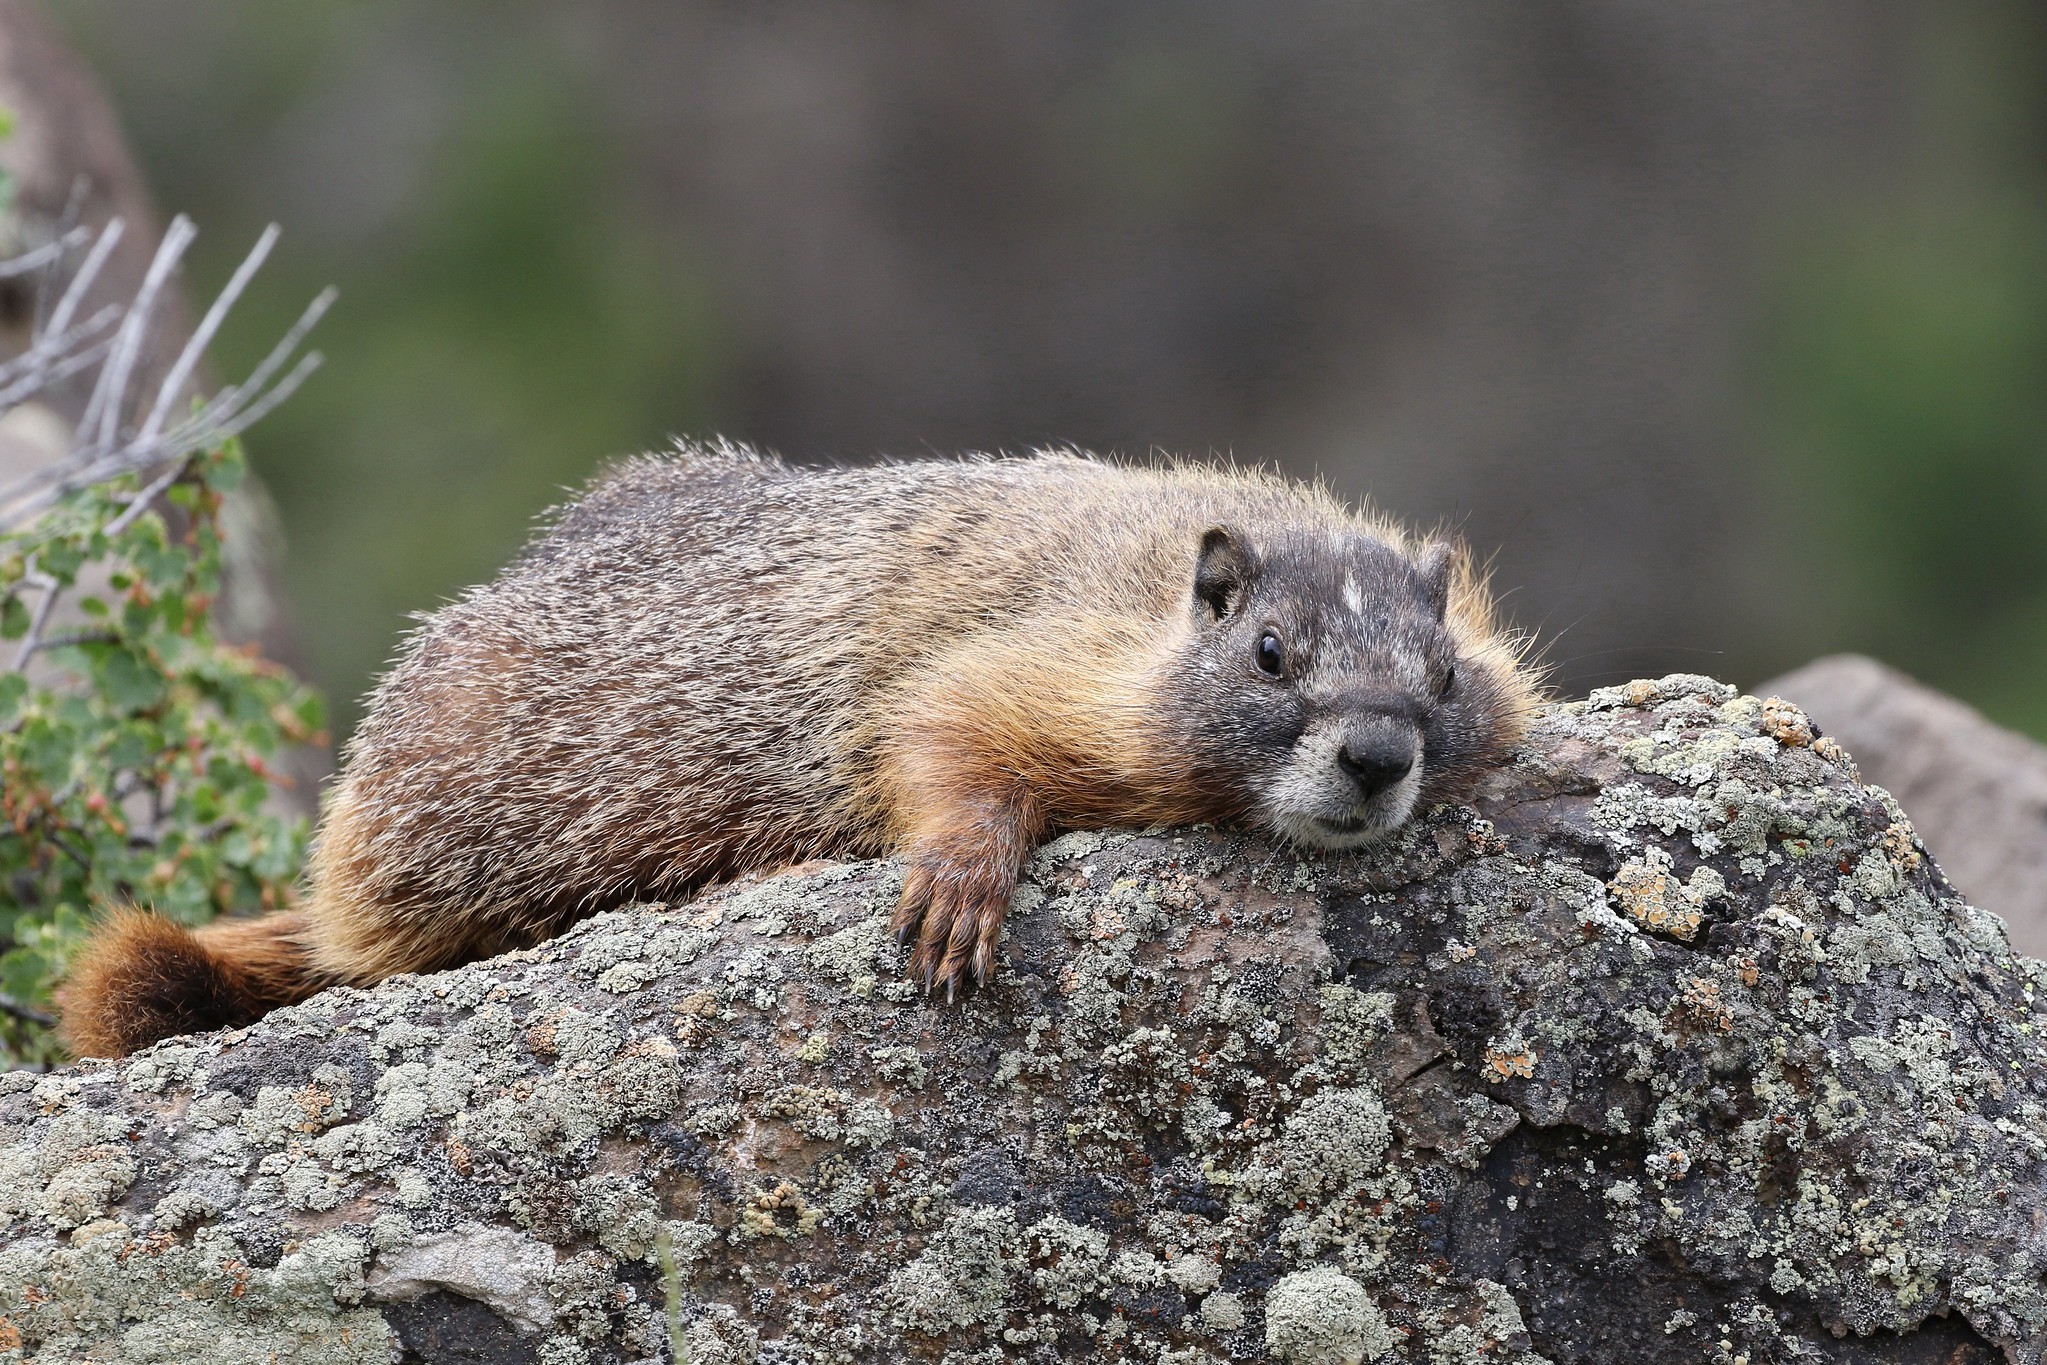 Yellow-bellied marmot sprawled out on a rock